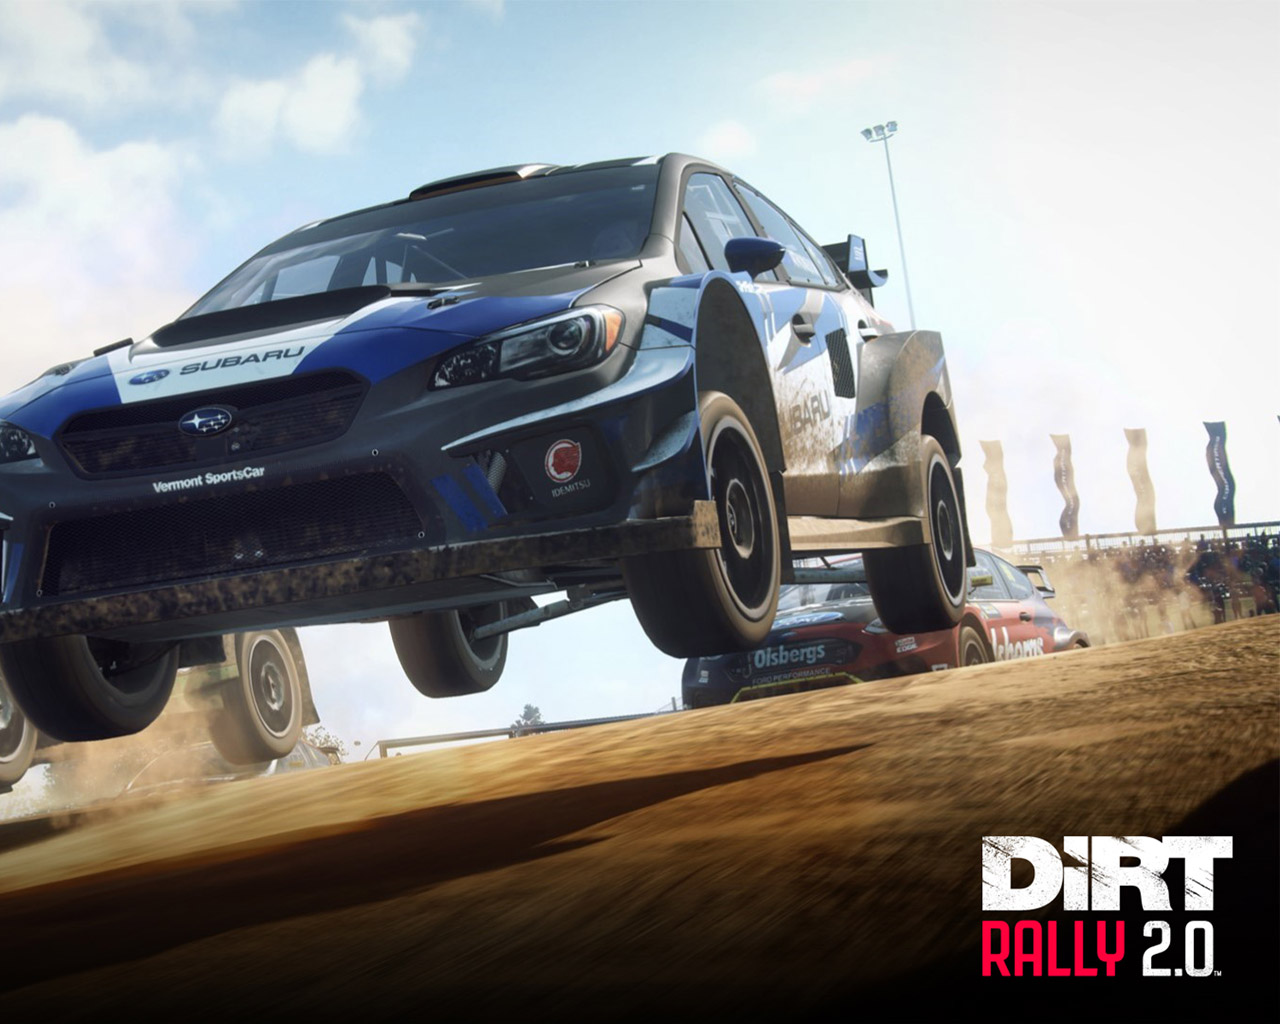 Free Dirt Rally 2.0 Wallpaper in 1280x1024